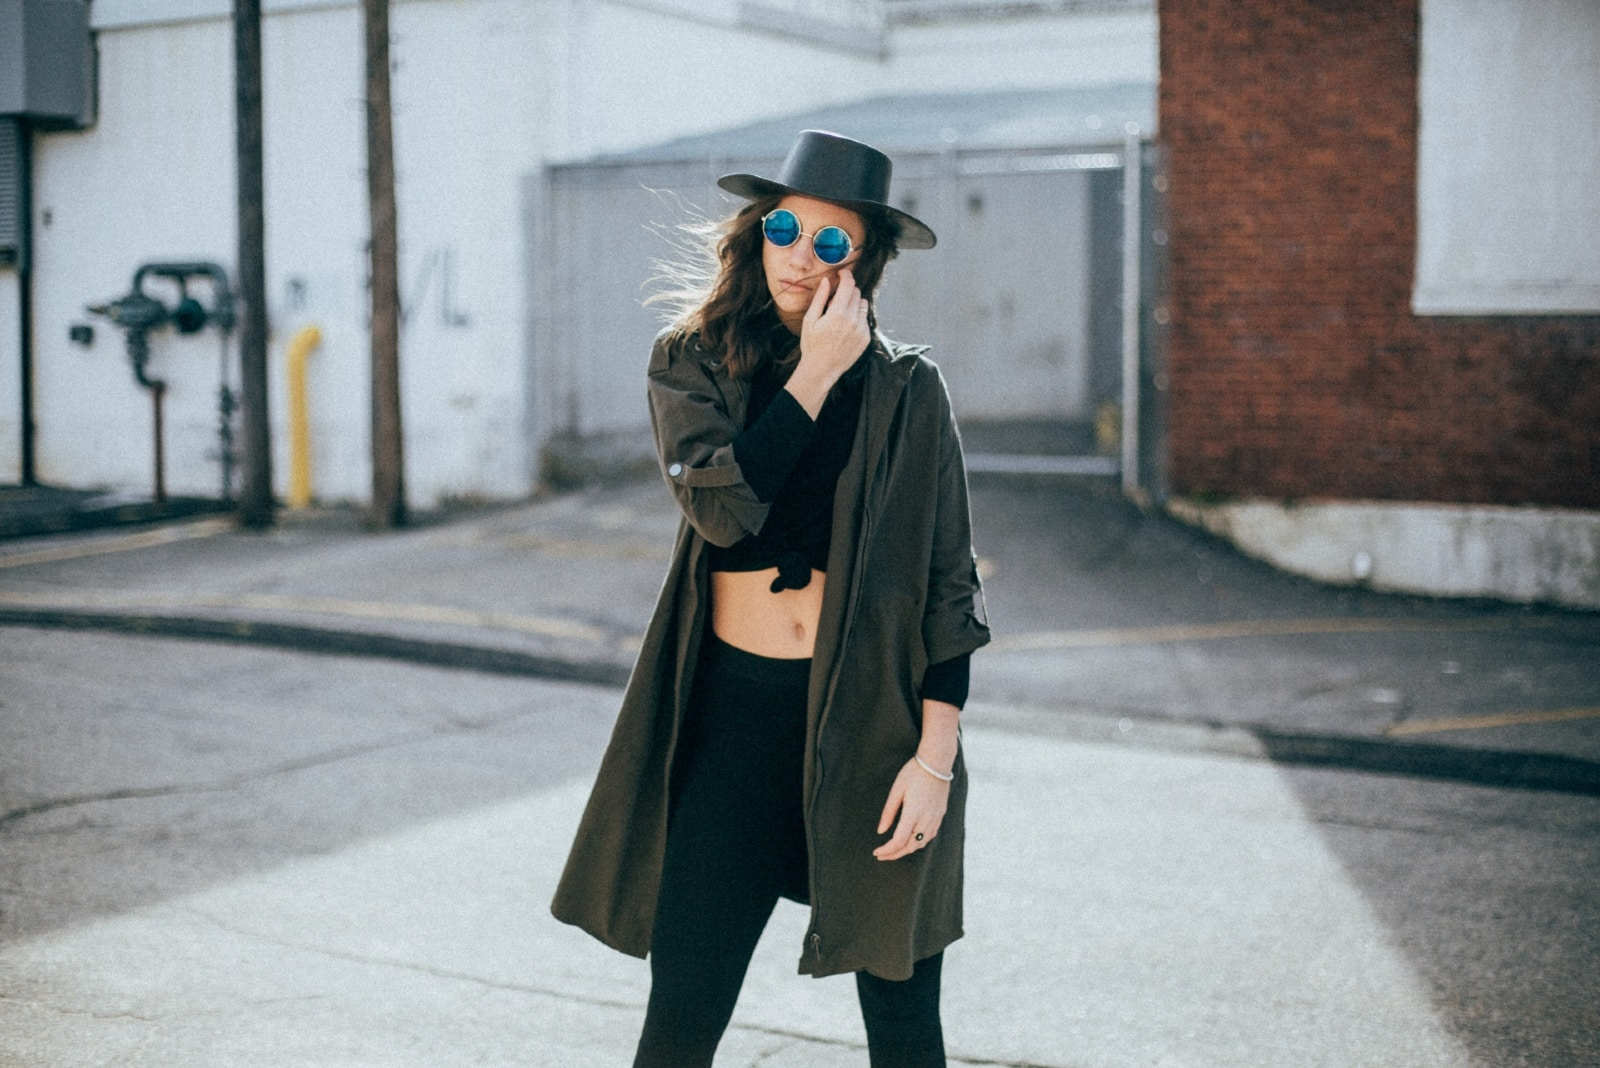 woman with black hat standing outdoor